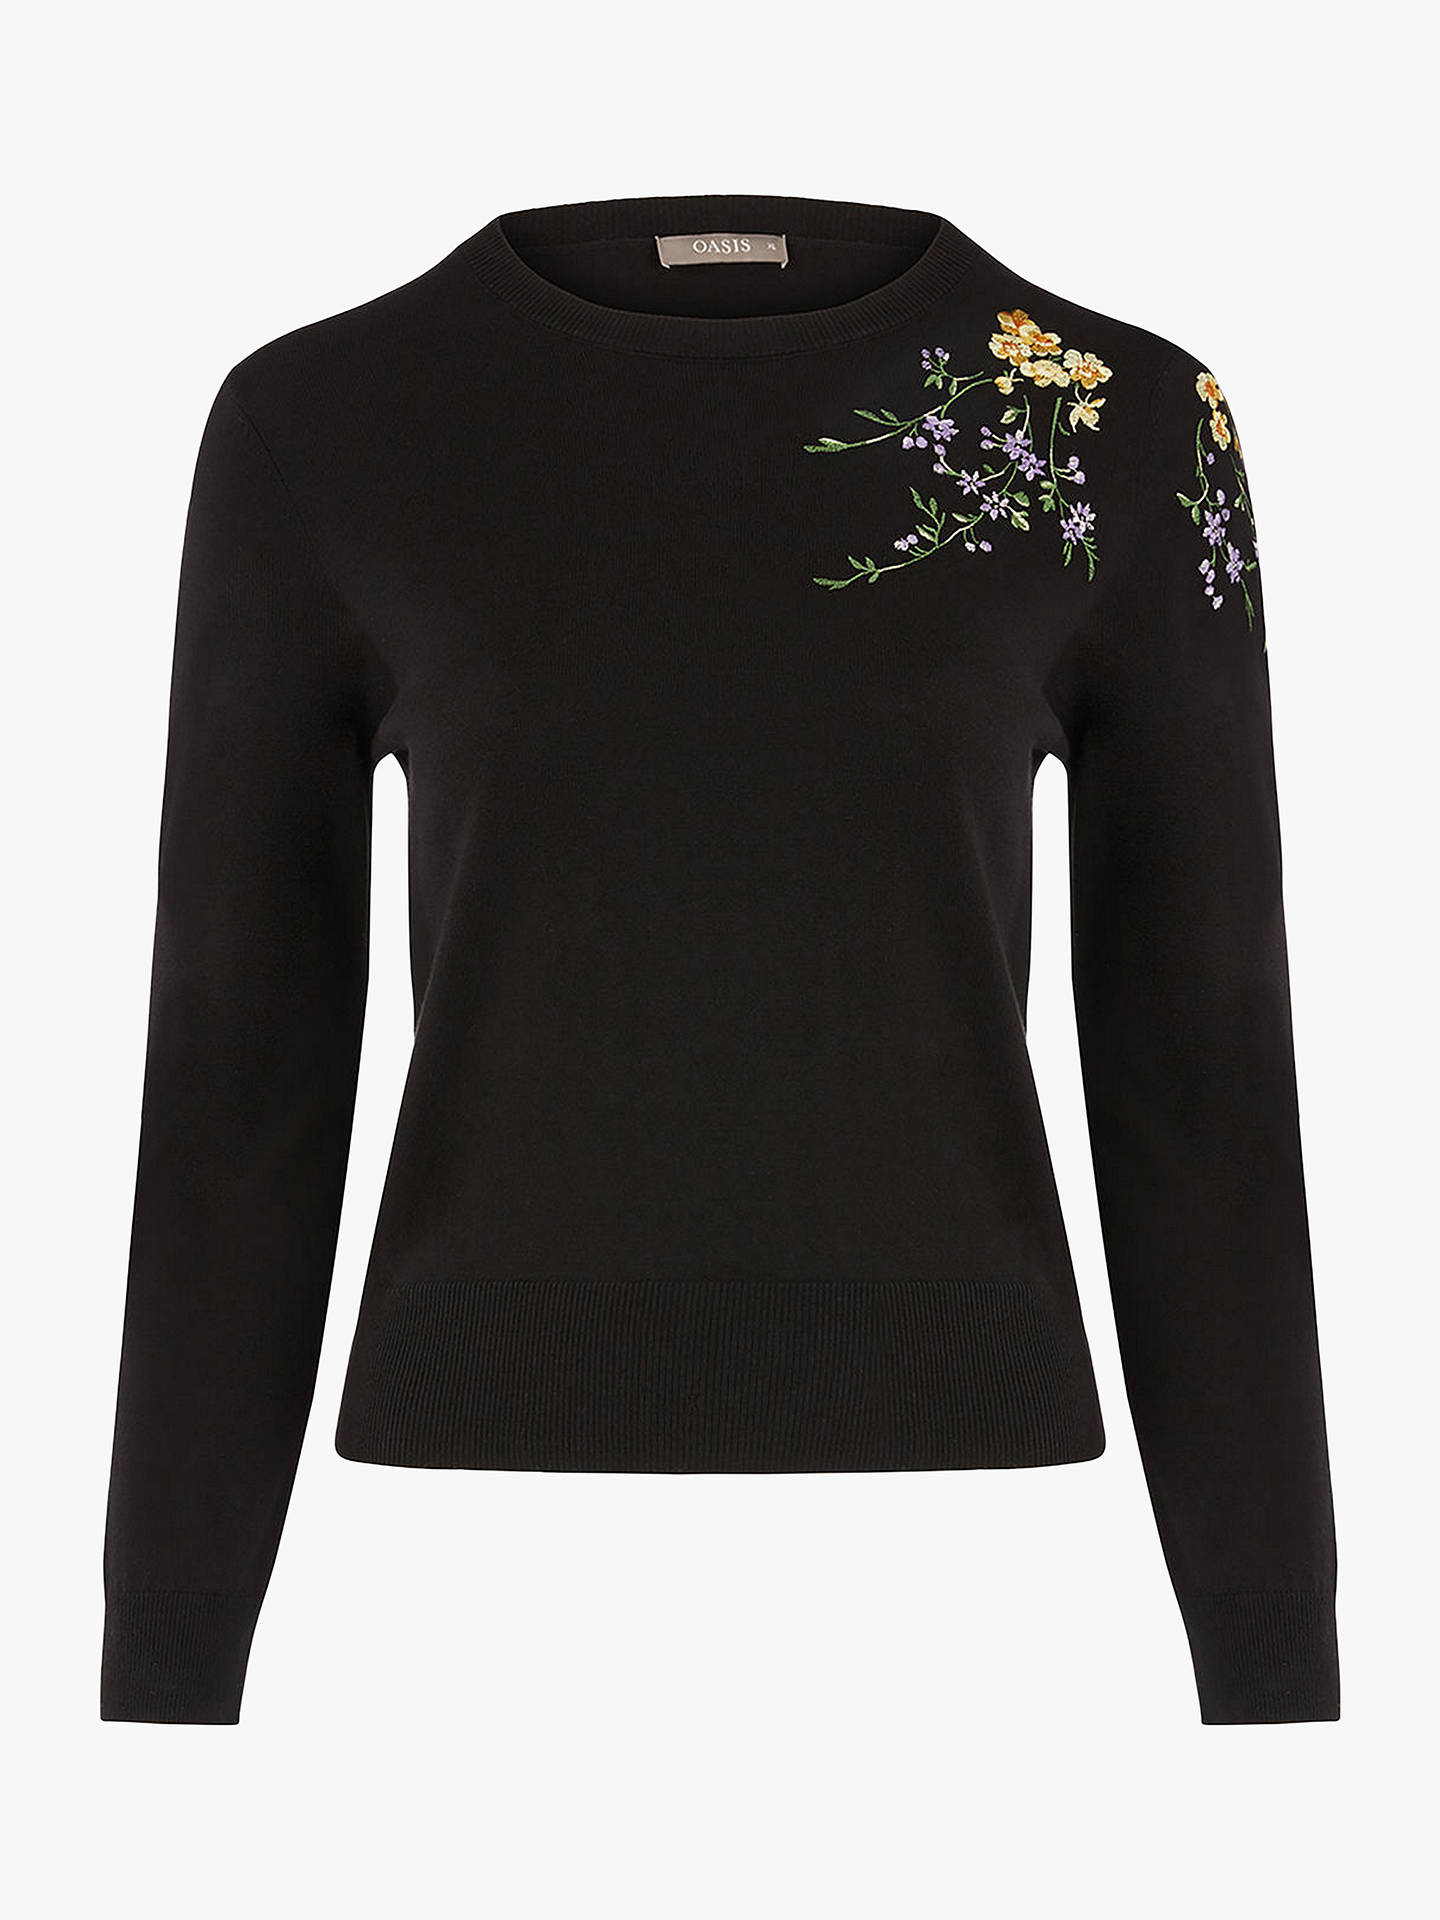 BuyOasis Curve Isla Jumper, Black/Multi, XL Online at johnlewis.com